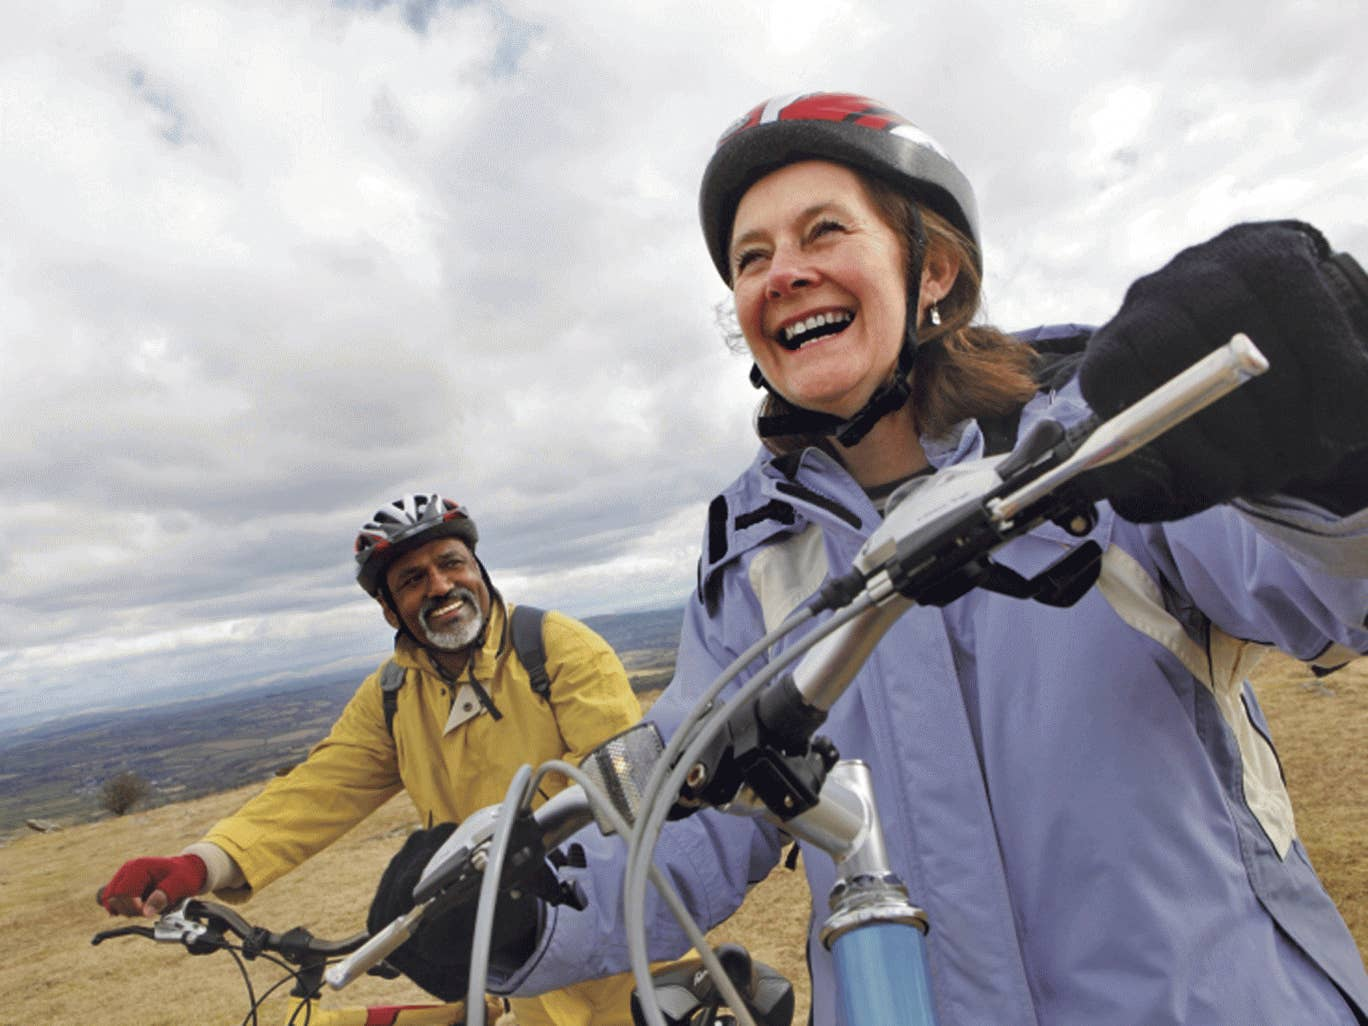 Feel-good factor: cycling can help beat depression